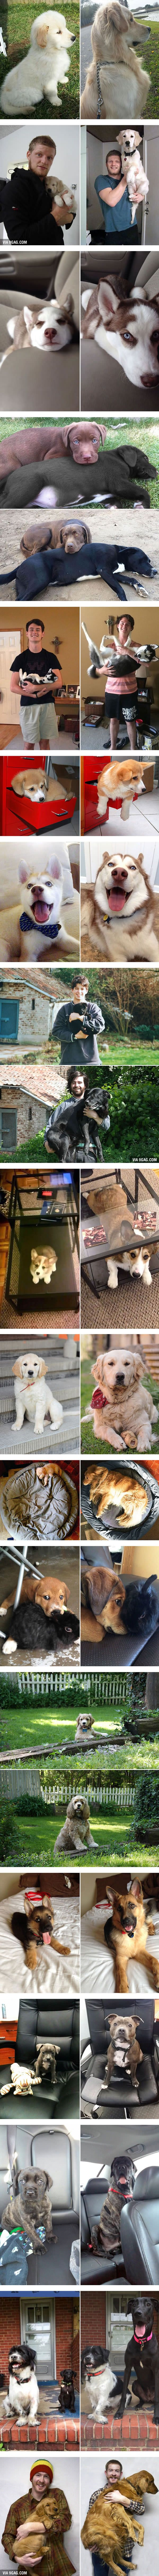 Before and After Photos of Dogs Growing Up - 9GAG